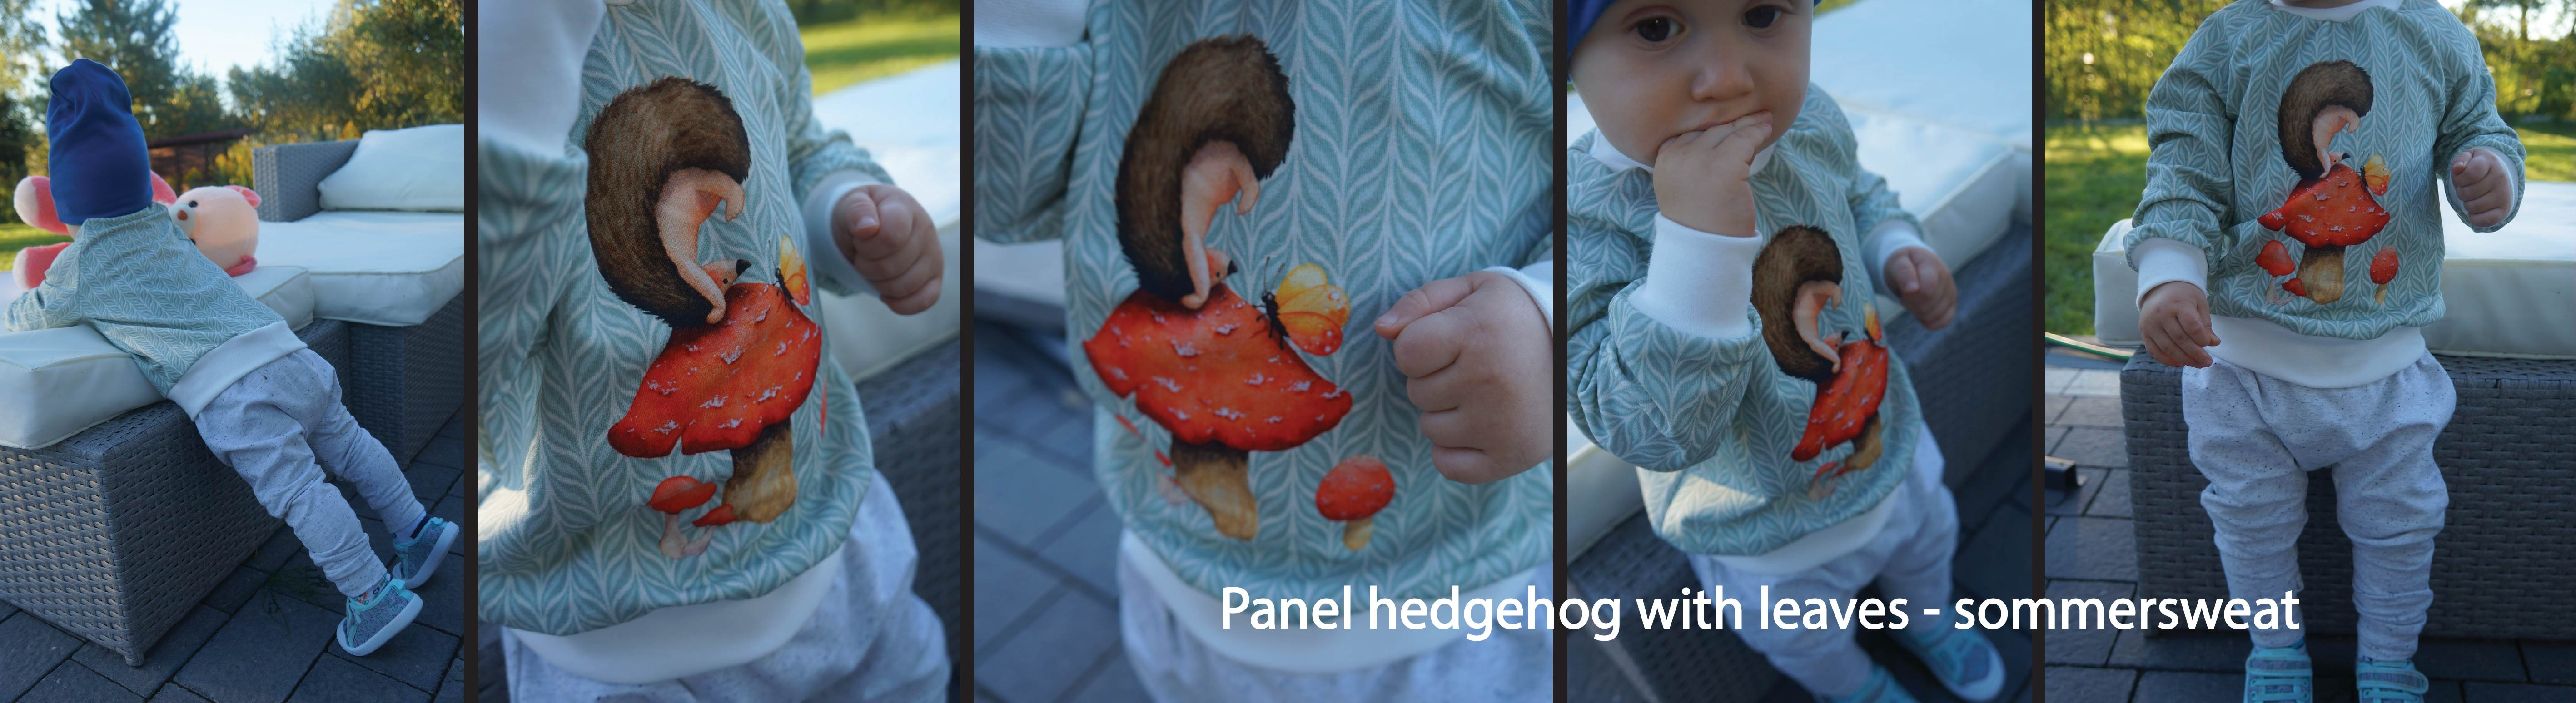 Panel hedgehod with leaves -sommersweat